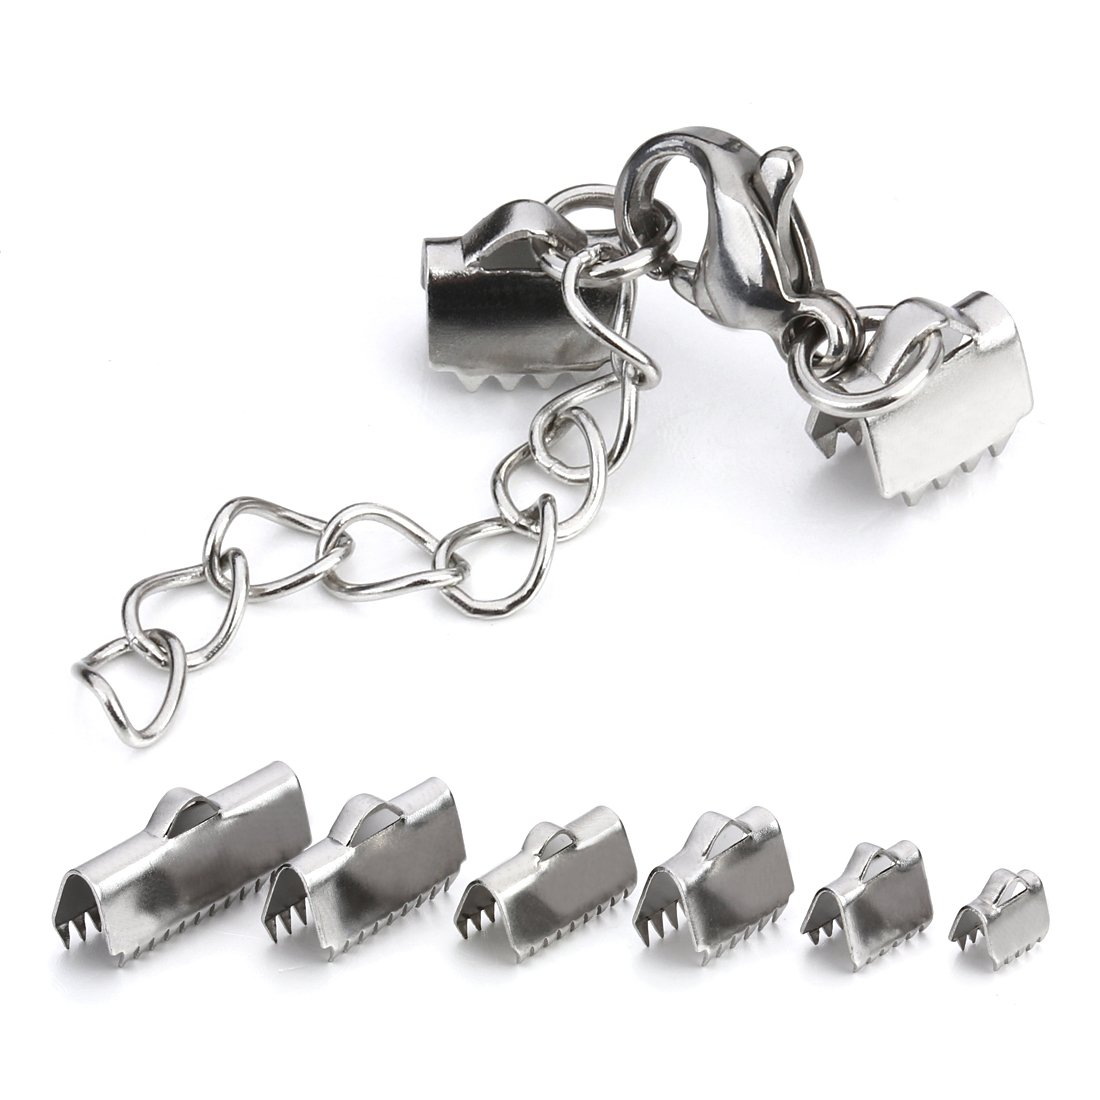 Linsoir Beads Stainless Steel 13mm Ribbon End Clamp Crimps with Lobster Clasp and Extension Chain Flat Crimp End Clamps Cord Ends 10 Sets